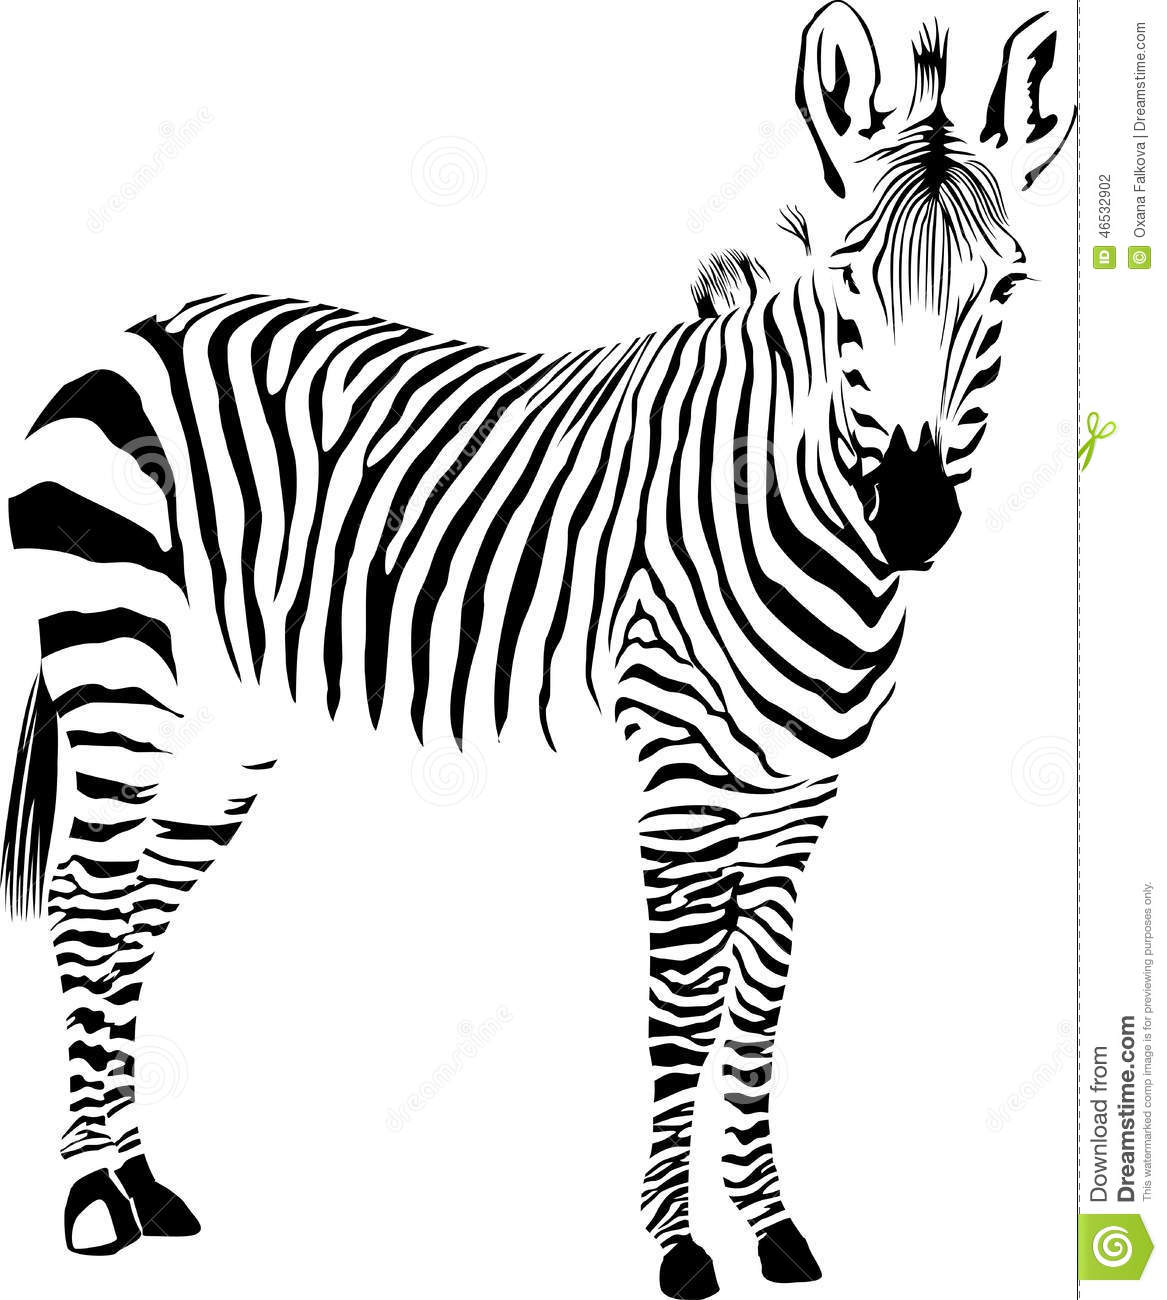 Zebra Stock Vector